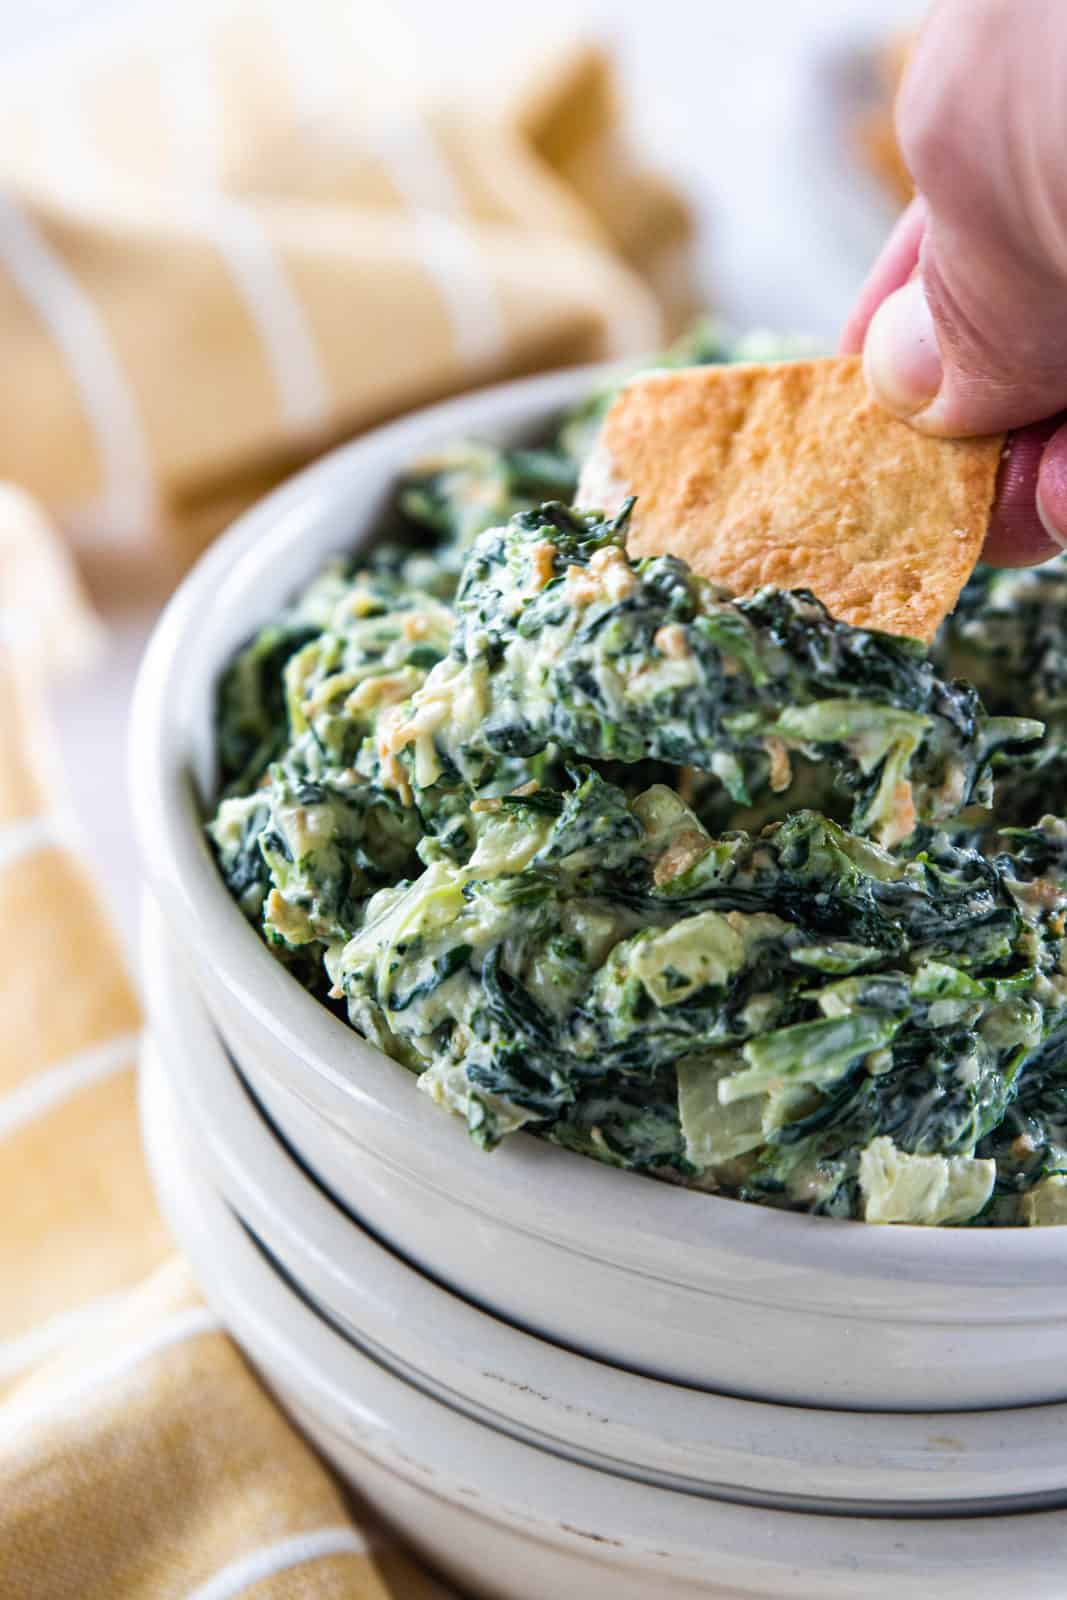 A hand scooping a pita chip into a white serving bowl filled with spinach dip.